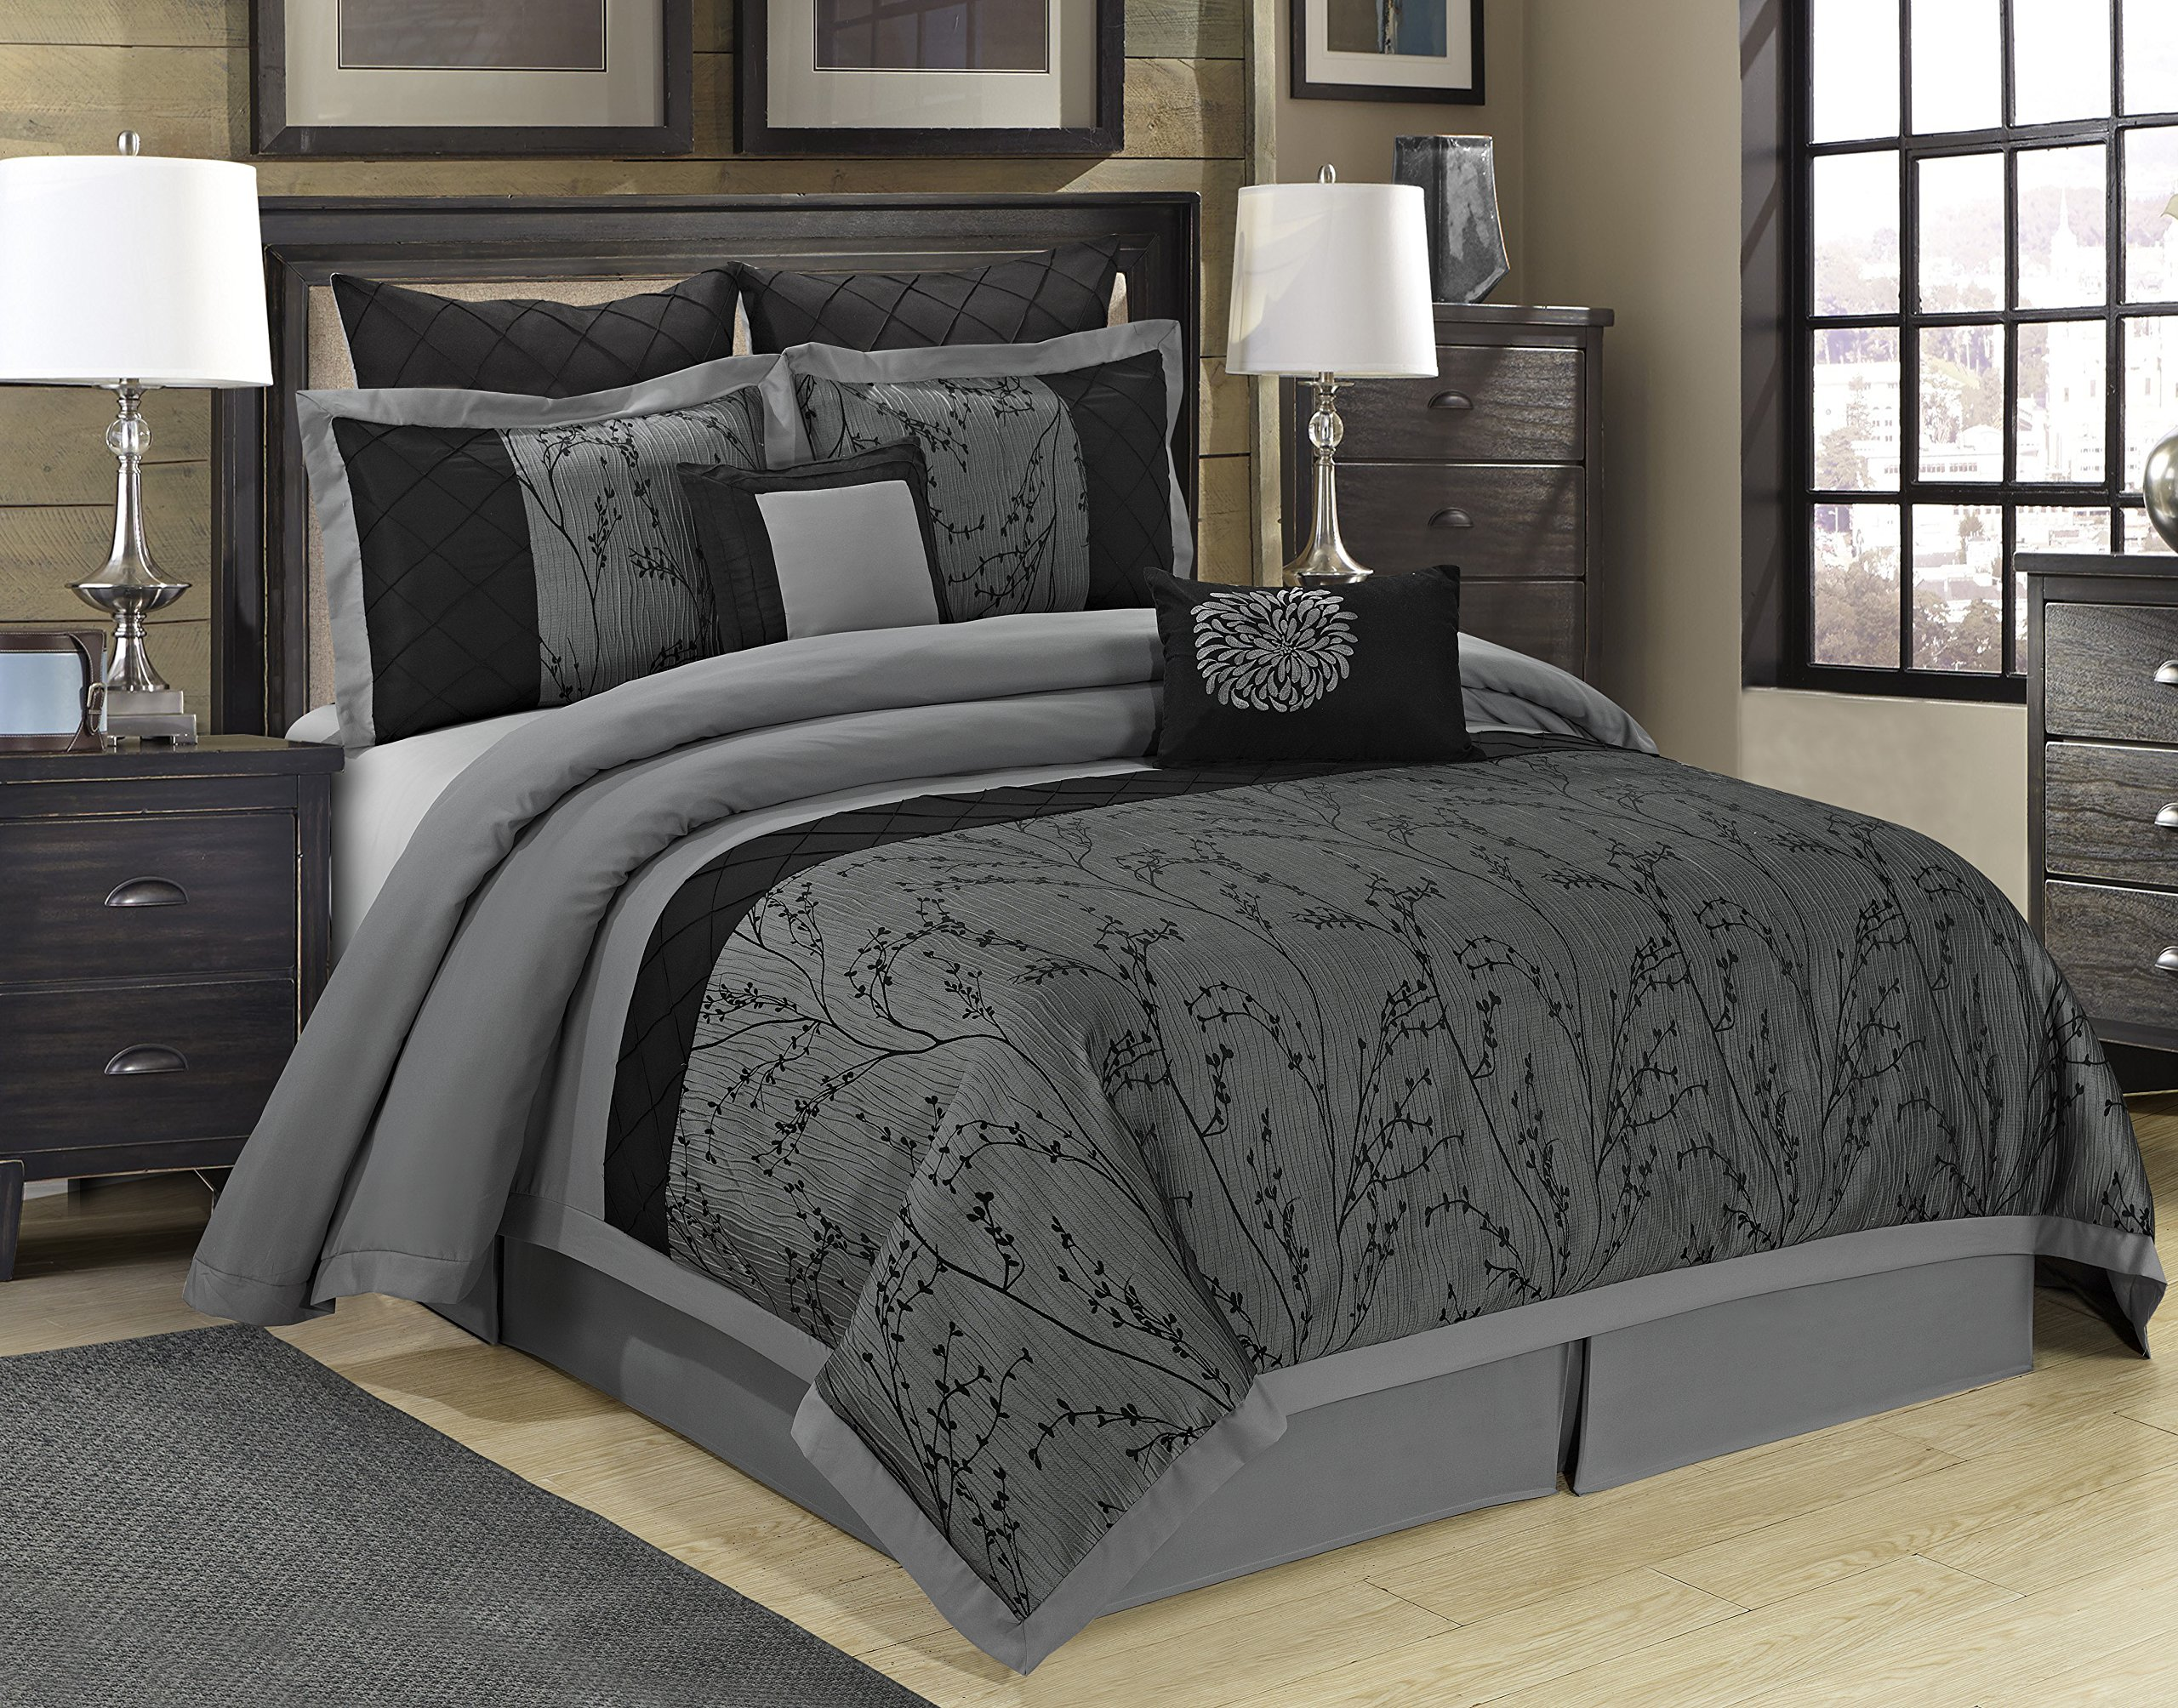 page elegant charming covers nz size abstract queen reversible dark kohphiphi cover duvet of sizes full bedding design info cotton modern paris gray solid